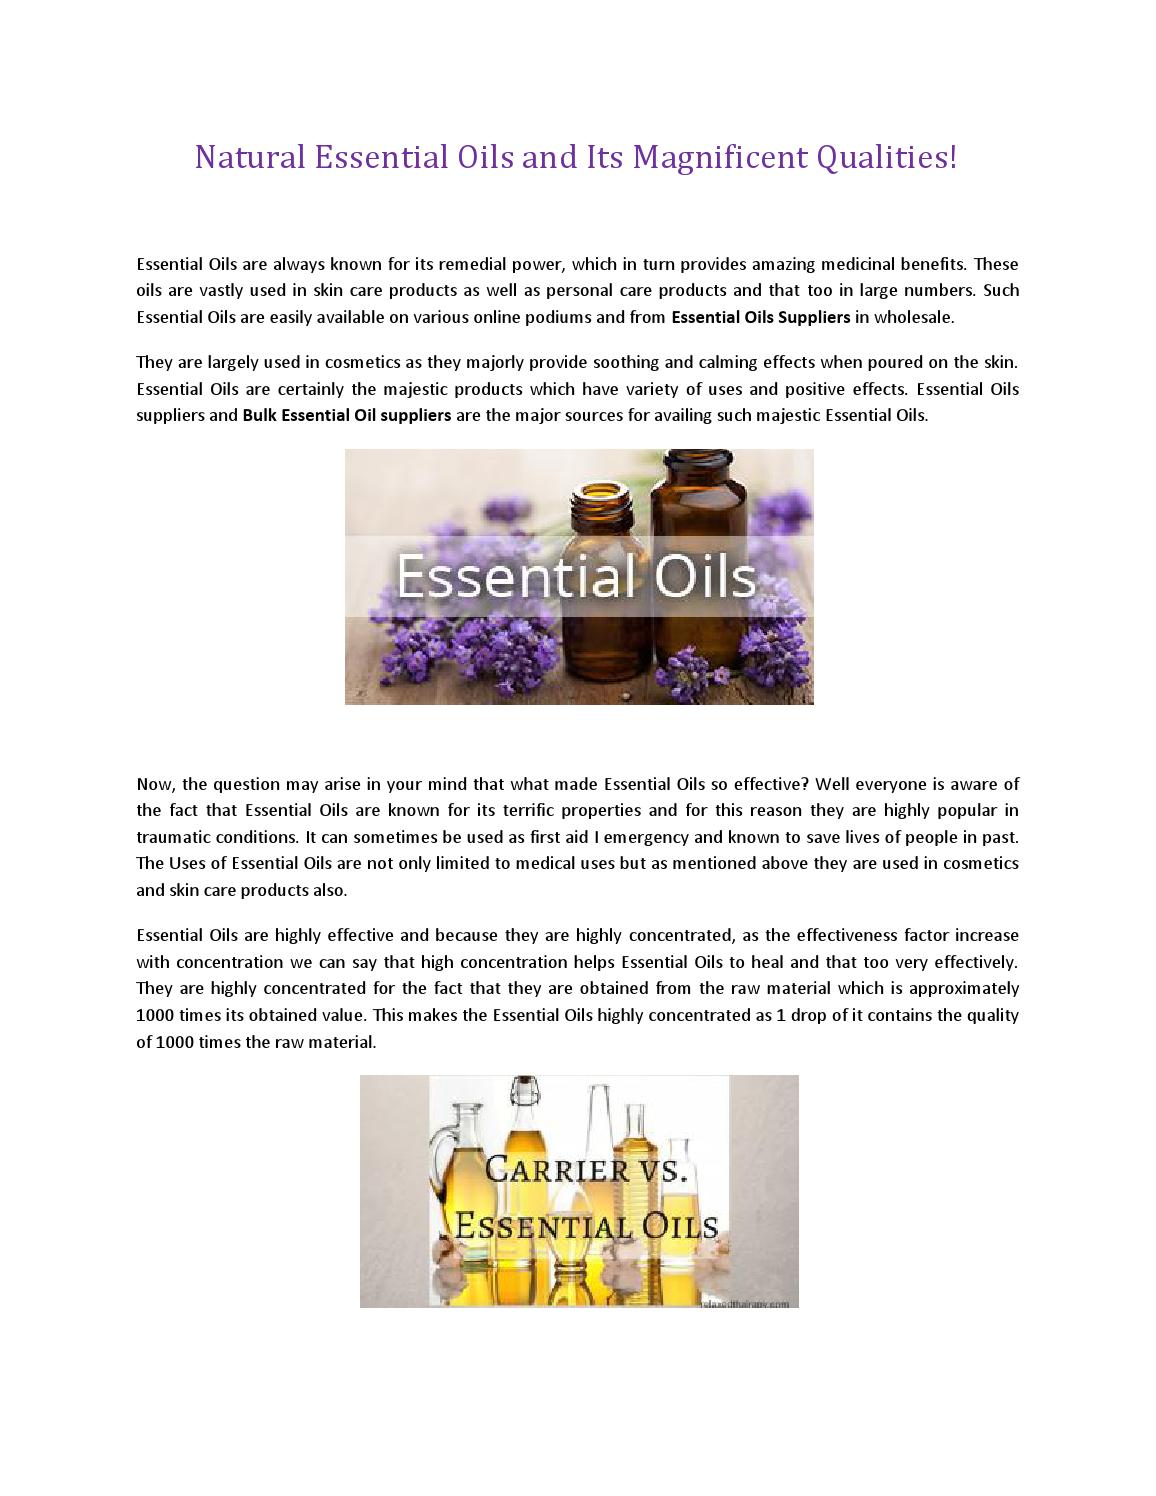 Natural Essential Oils and Its Magnificent Qualities! by